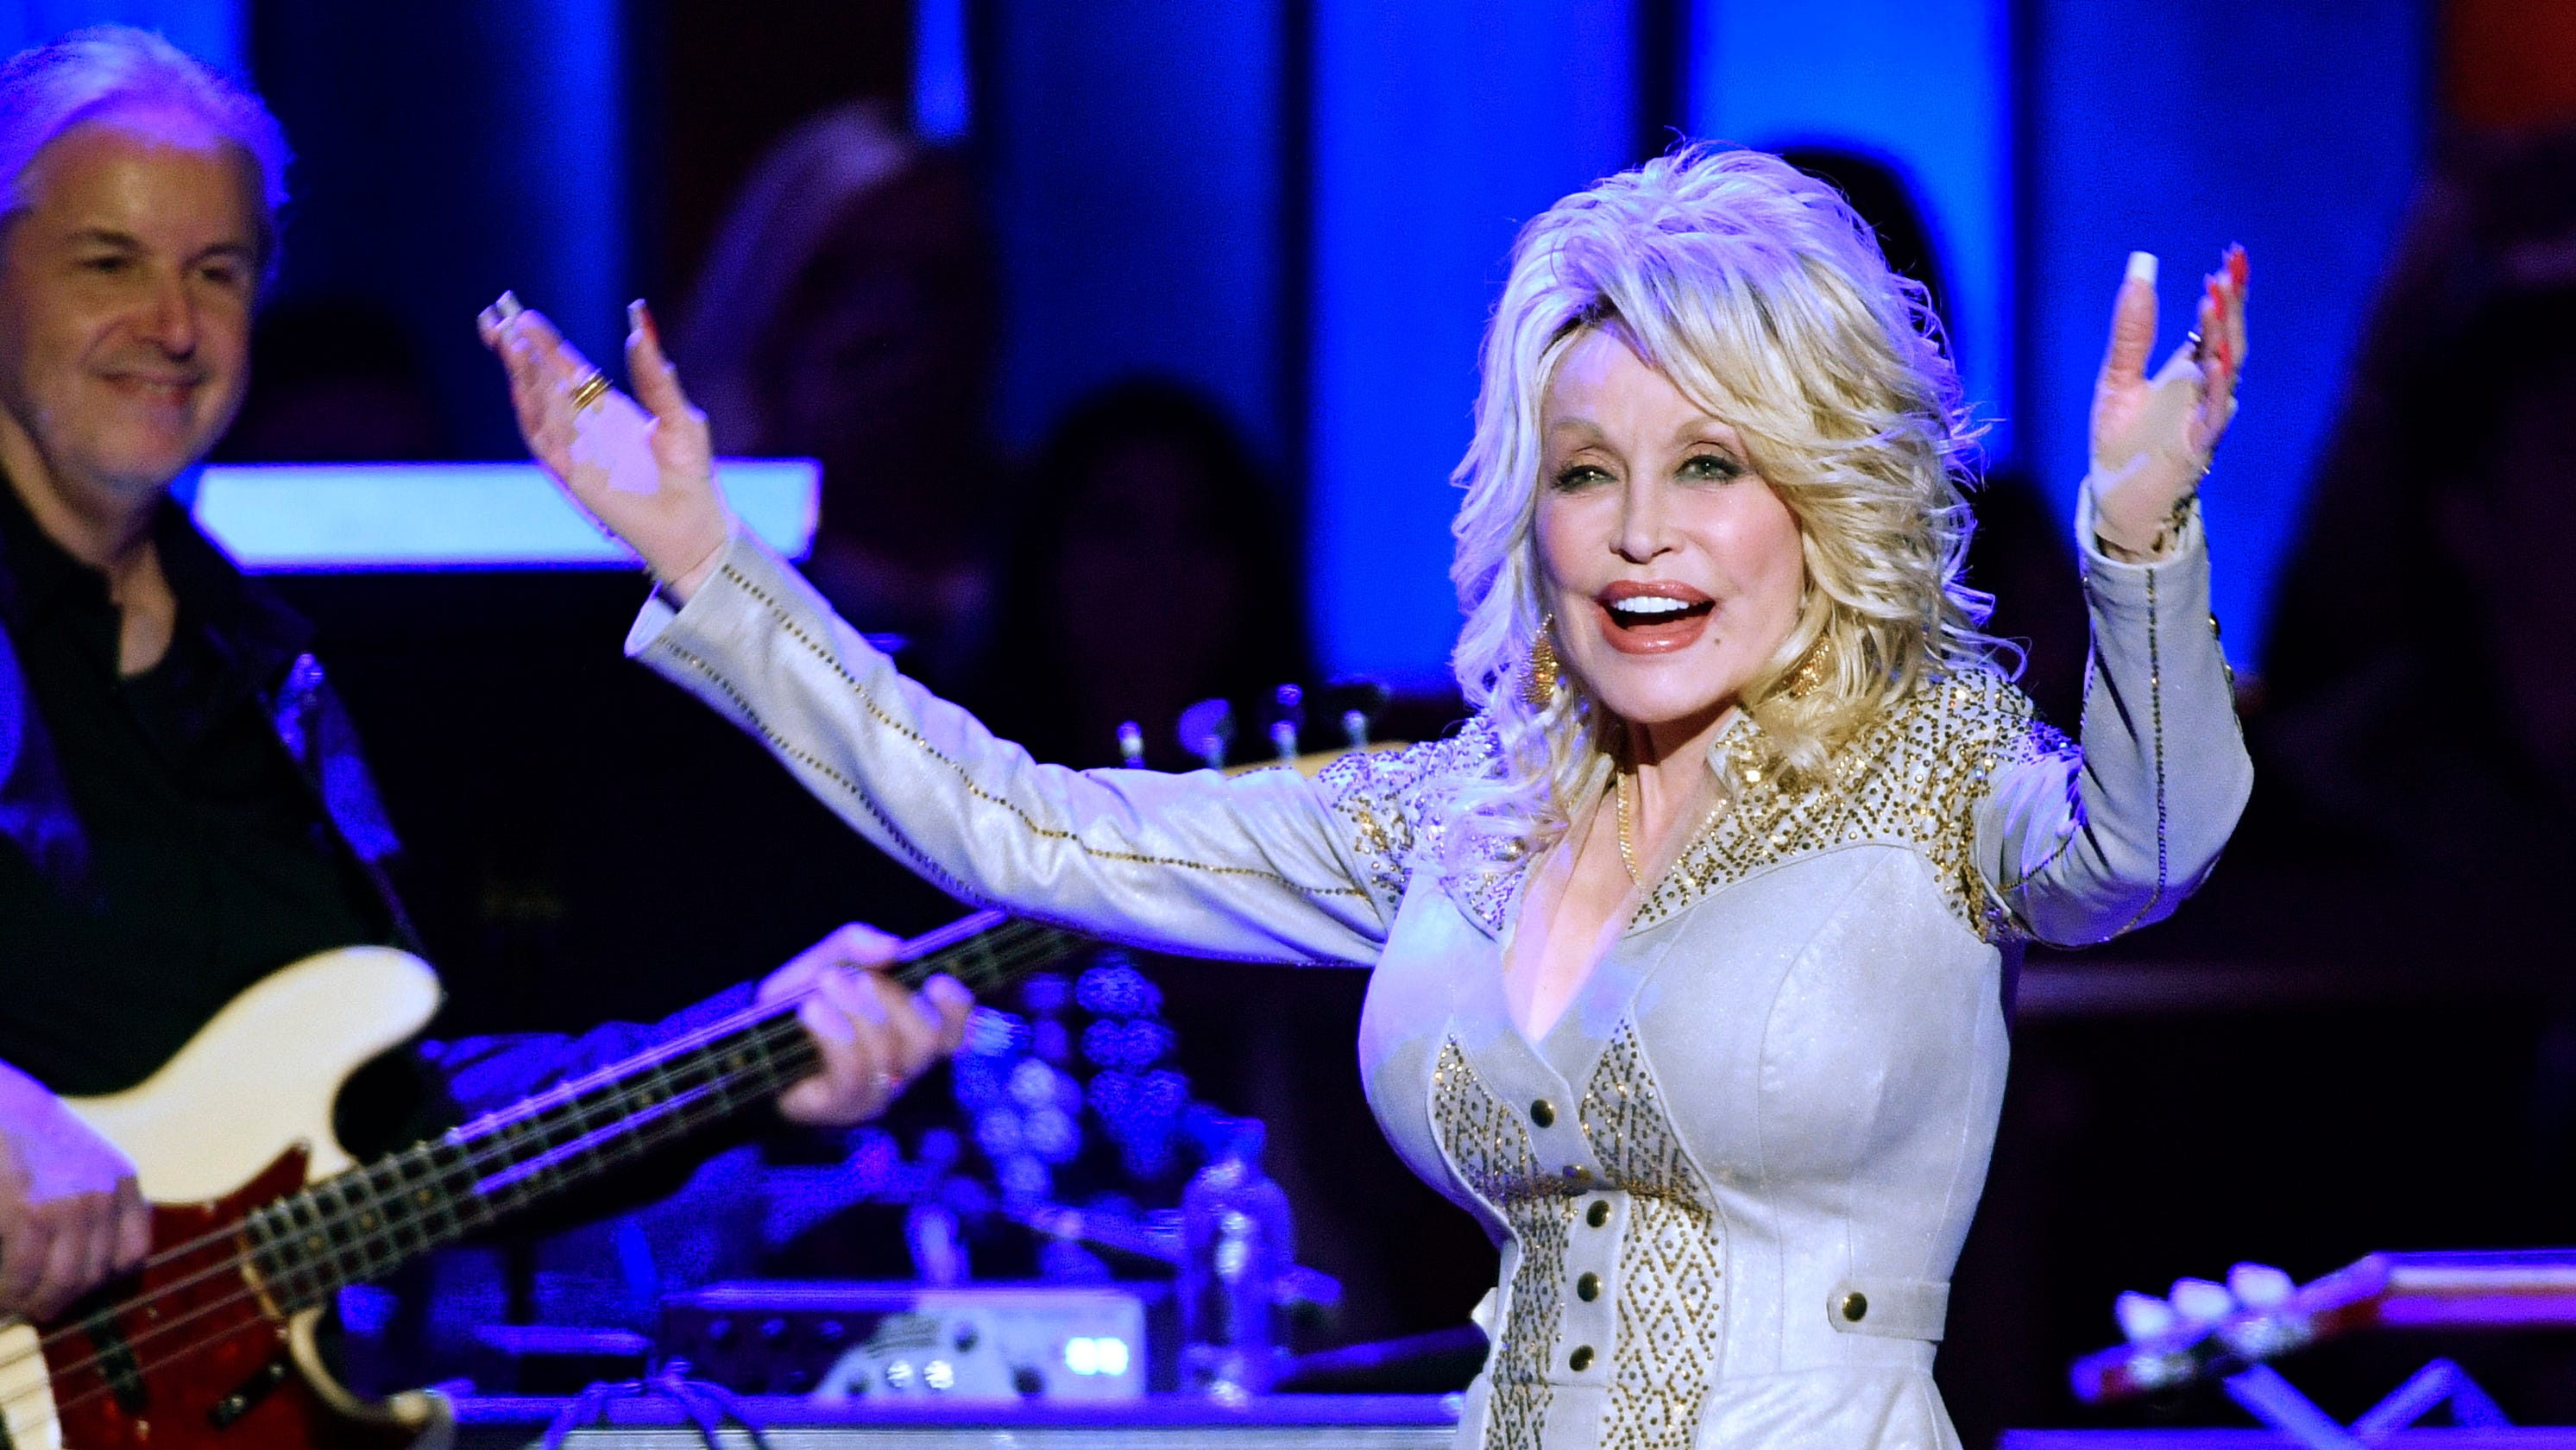 Dolly Parton celebrates 50th anniversary as a member of the Grand Ole Opry